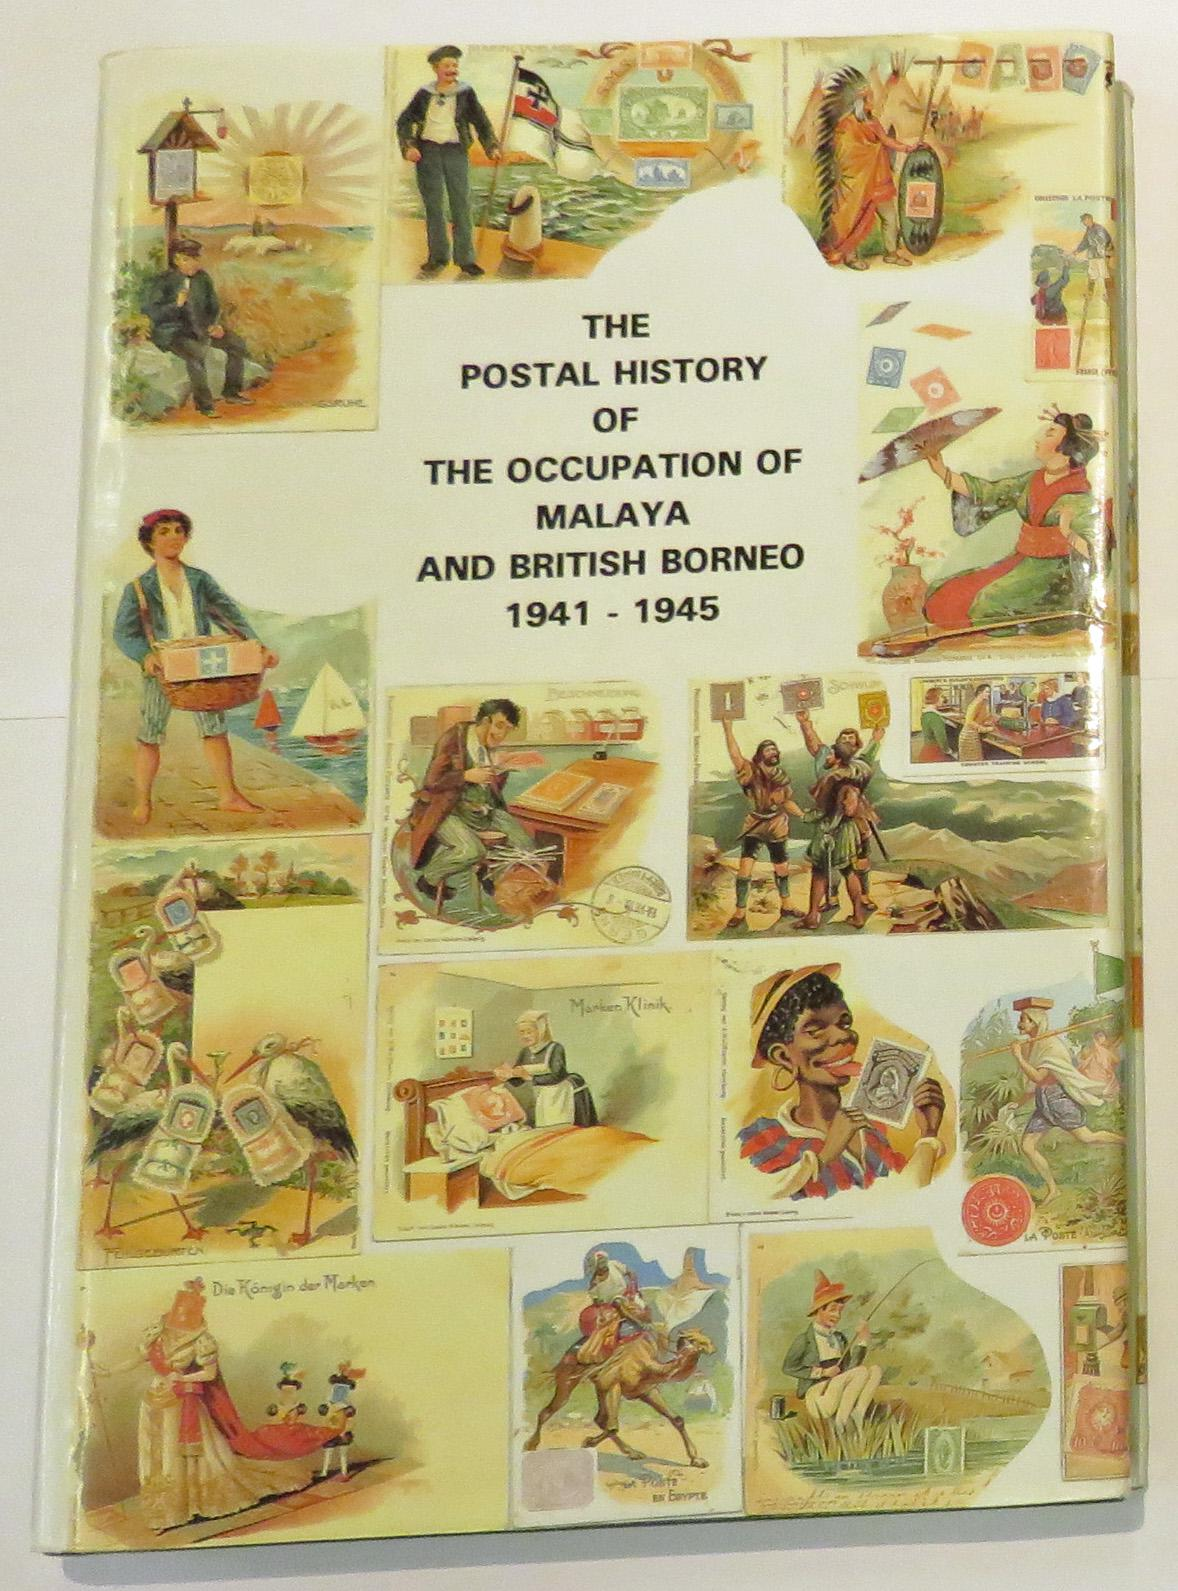 The Postal History Of The Occupation Of Malaya And British Borneo 1941-1945